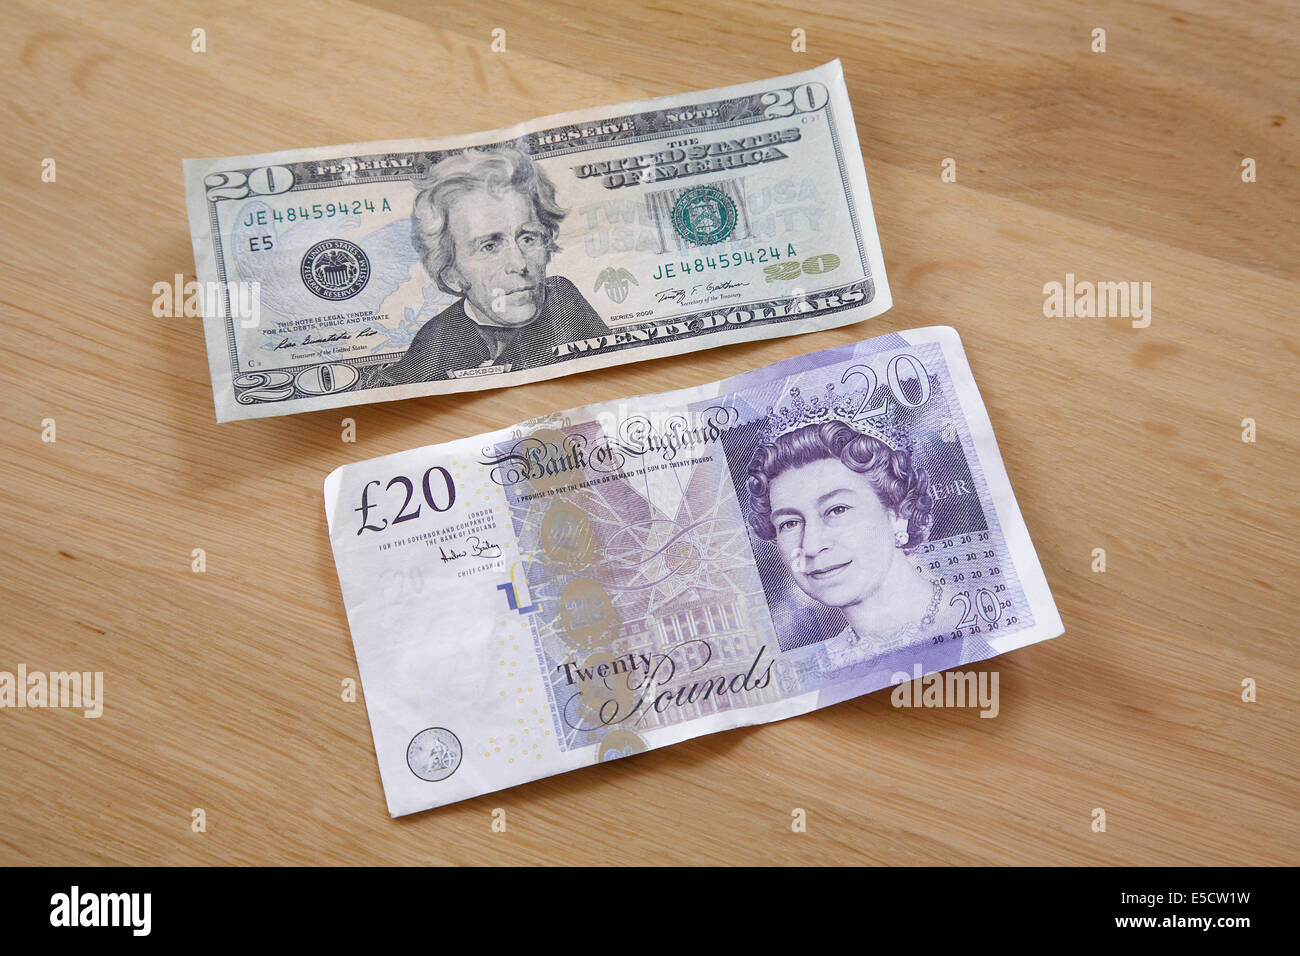 A 20 pound note and 20 dollar bill on a table. - Stock Image